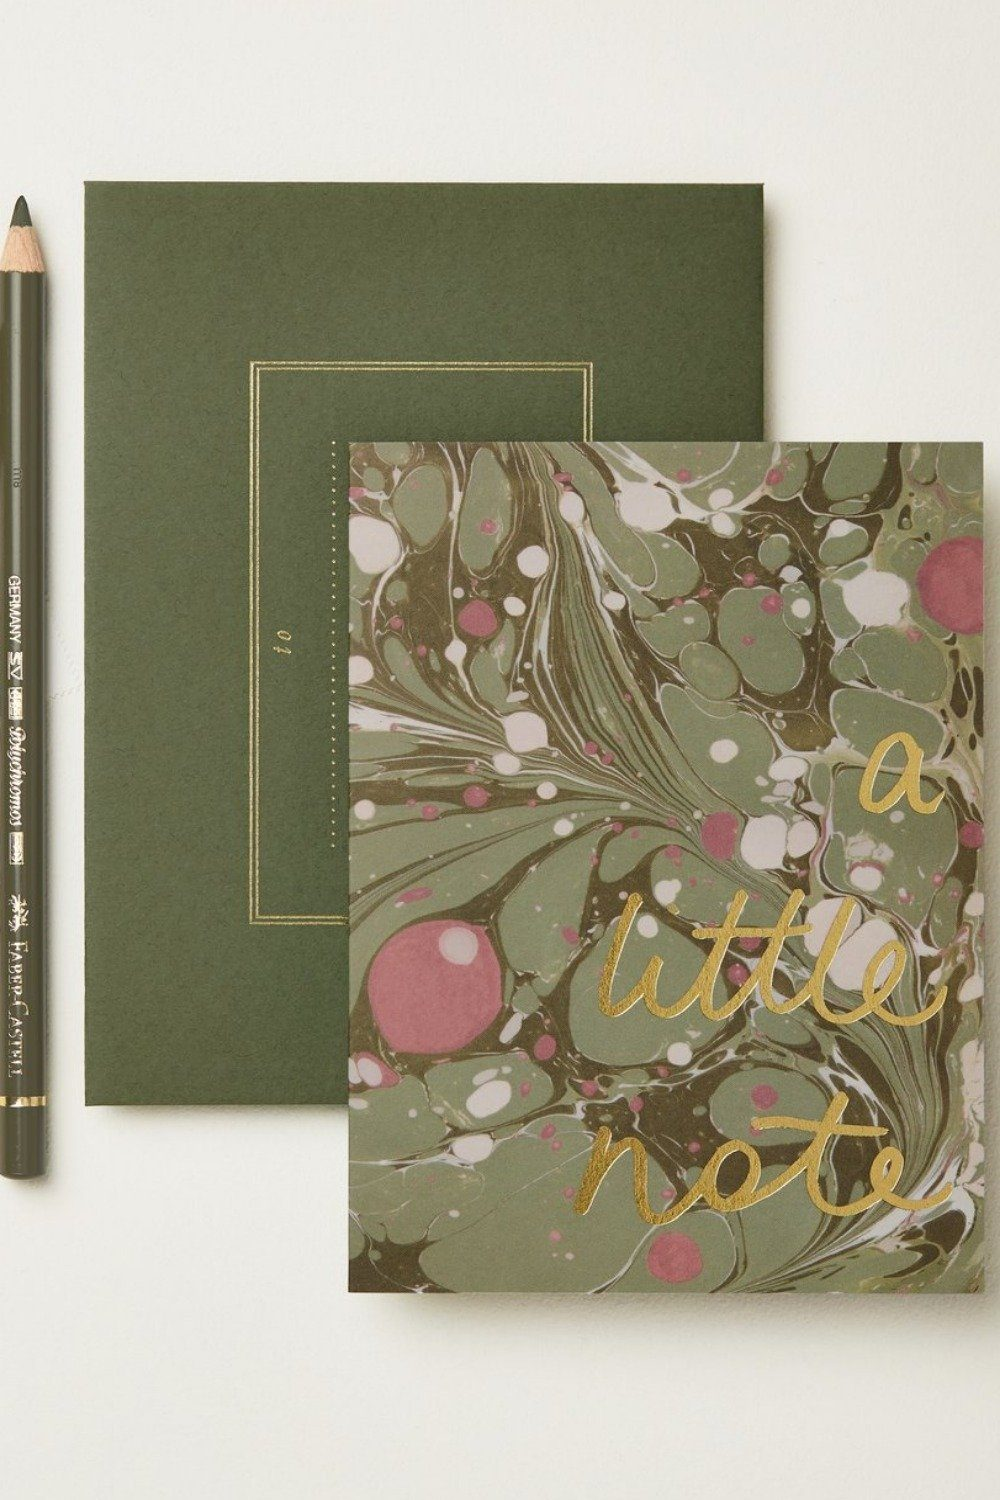 Wanderlust Card - Green Marble A Little Note Gifts & Stationery Wanderlust